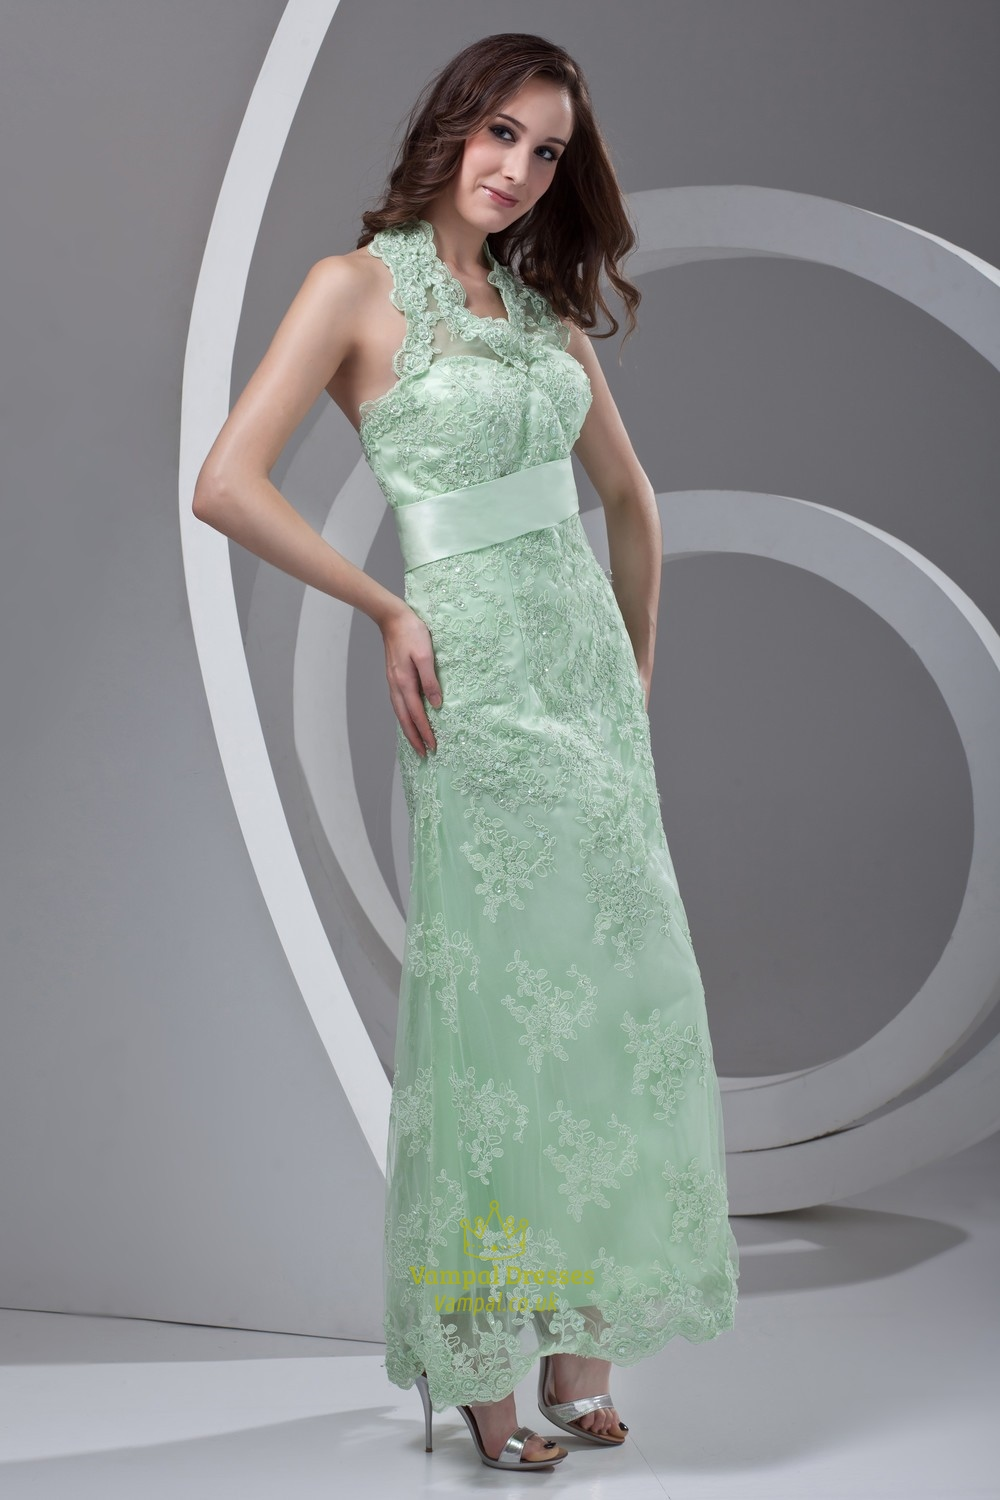 Princess Halter Ankle Length Lace Backless Green Prom